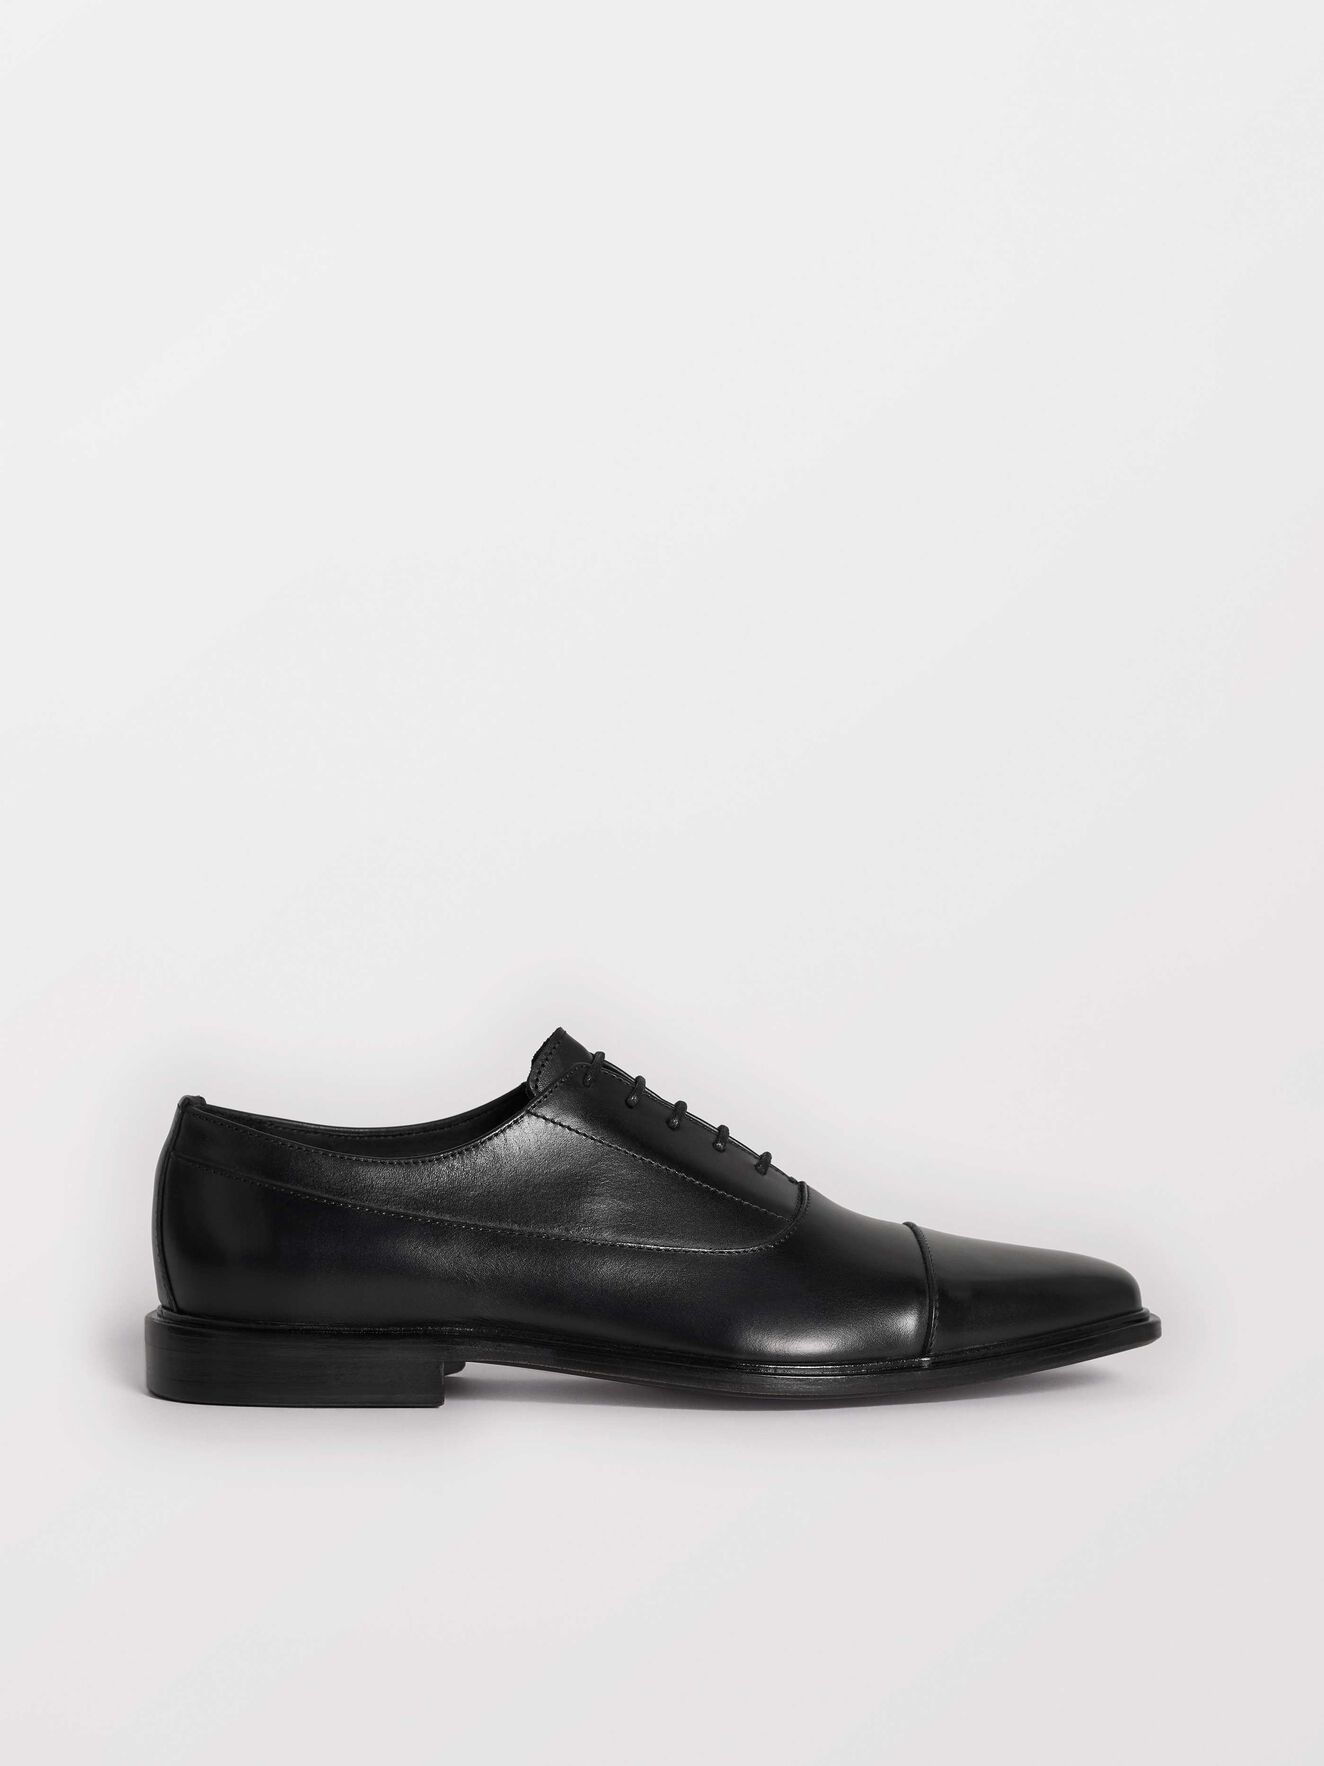 Sinter Shoe in Black from Tiger of Sweden